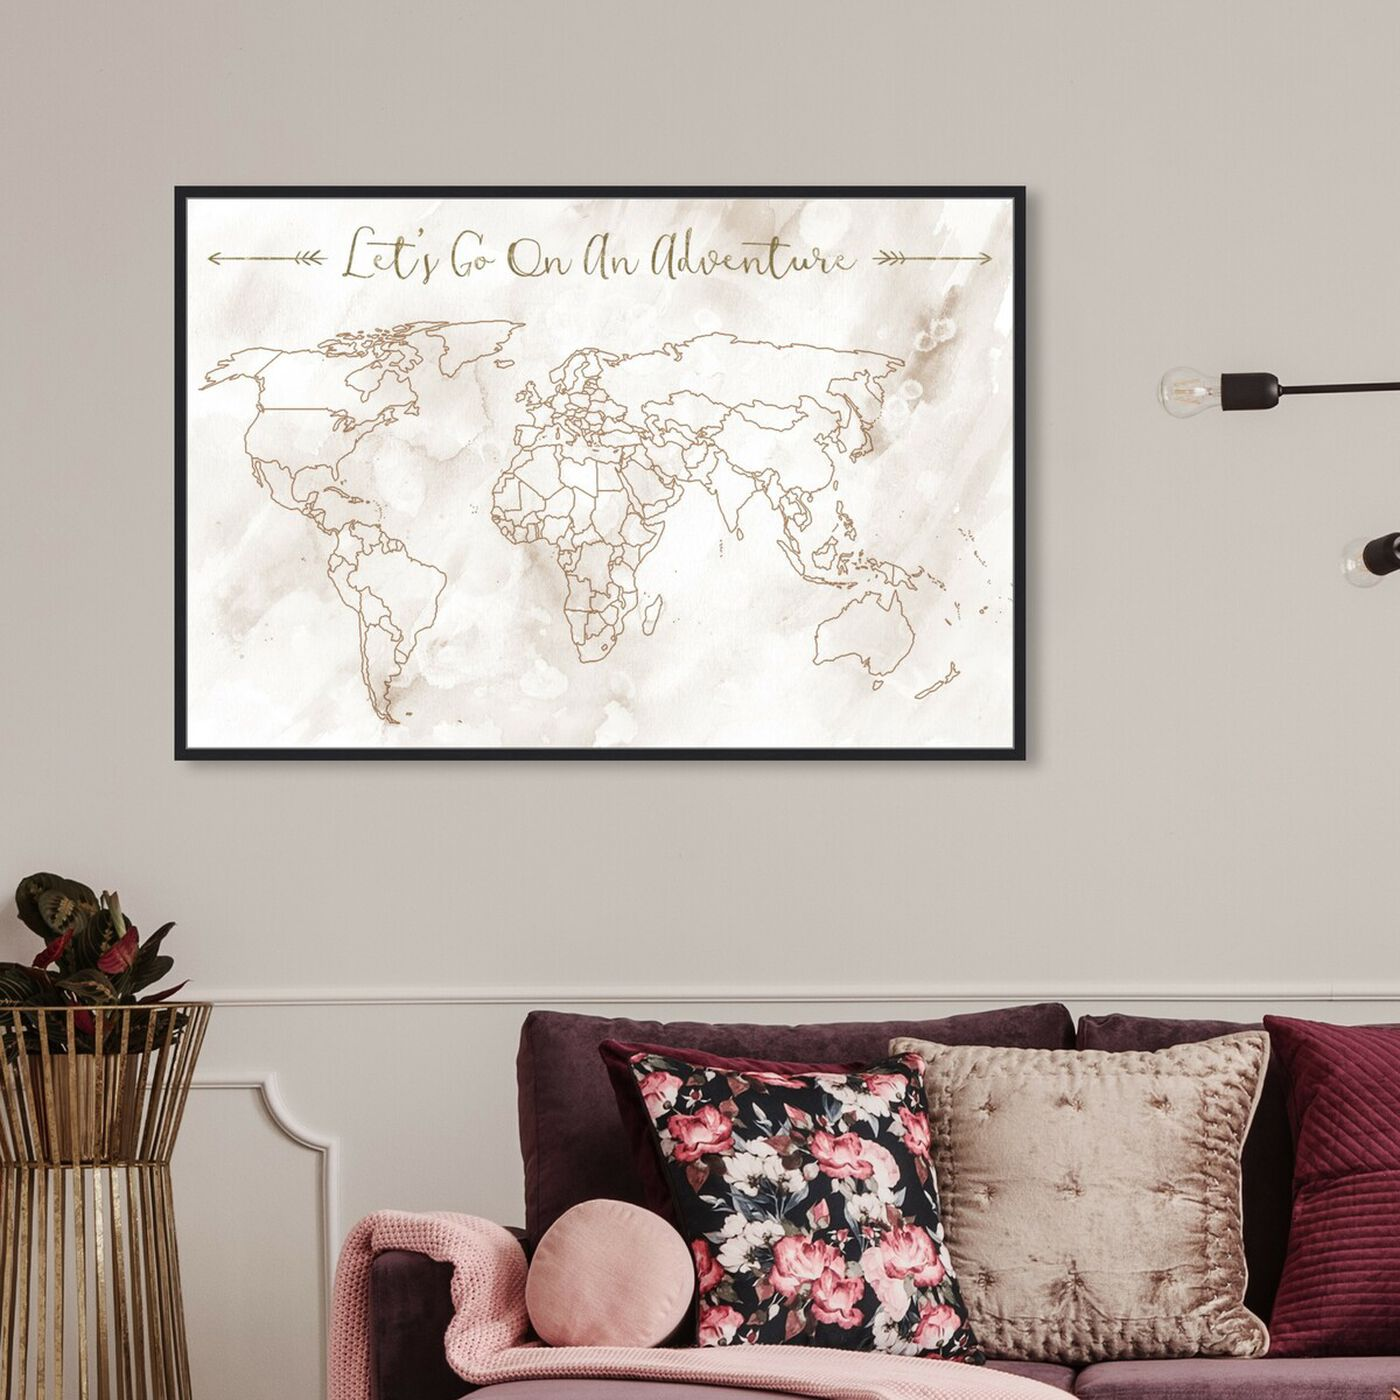 Hanging view of Lets Go On An Adventure featuring typography and quotes and motivational quotes and sayings art.